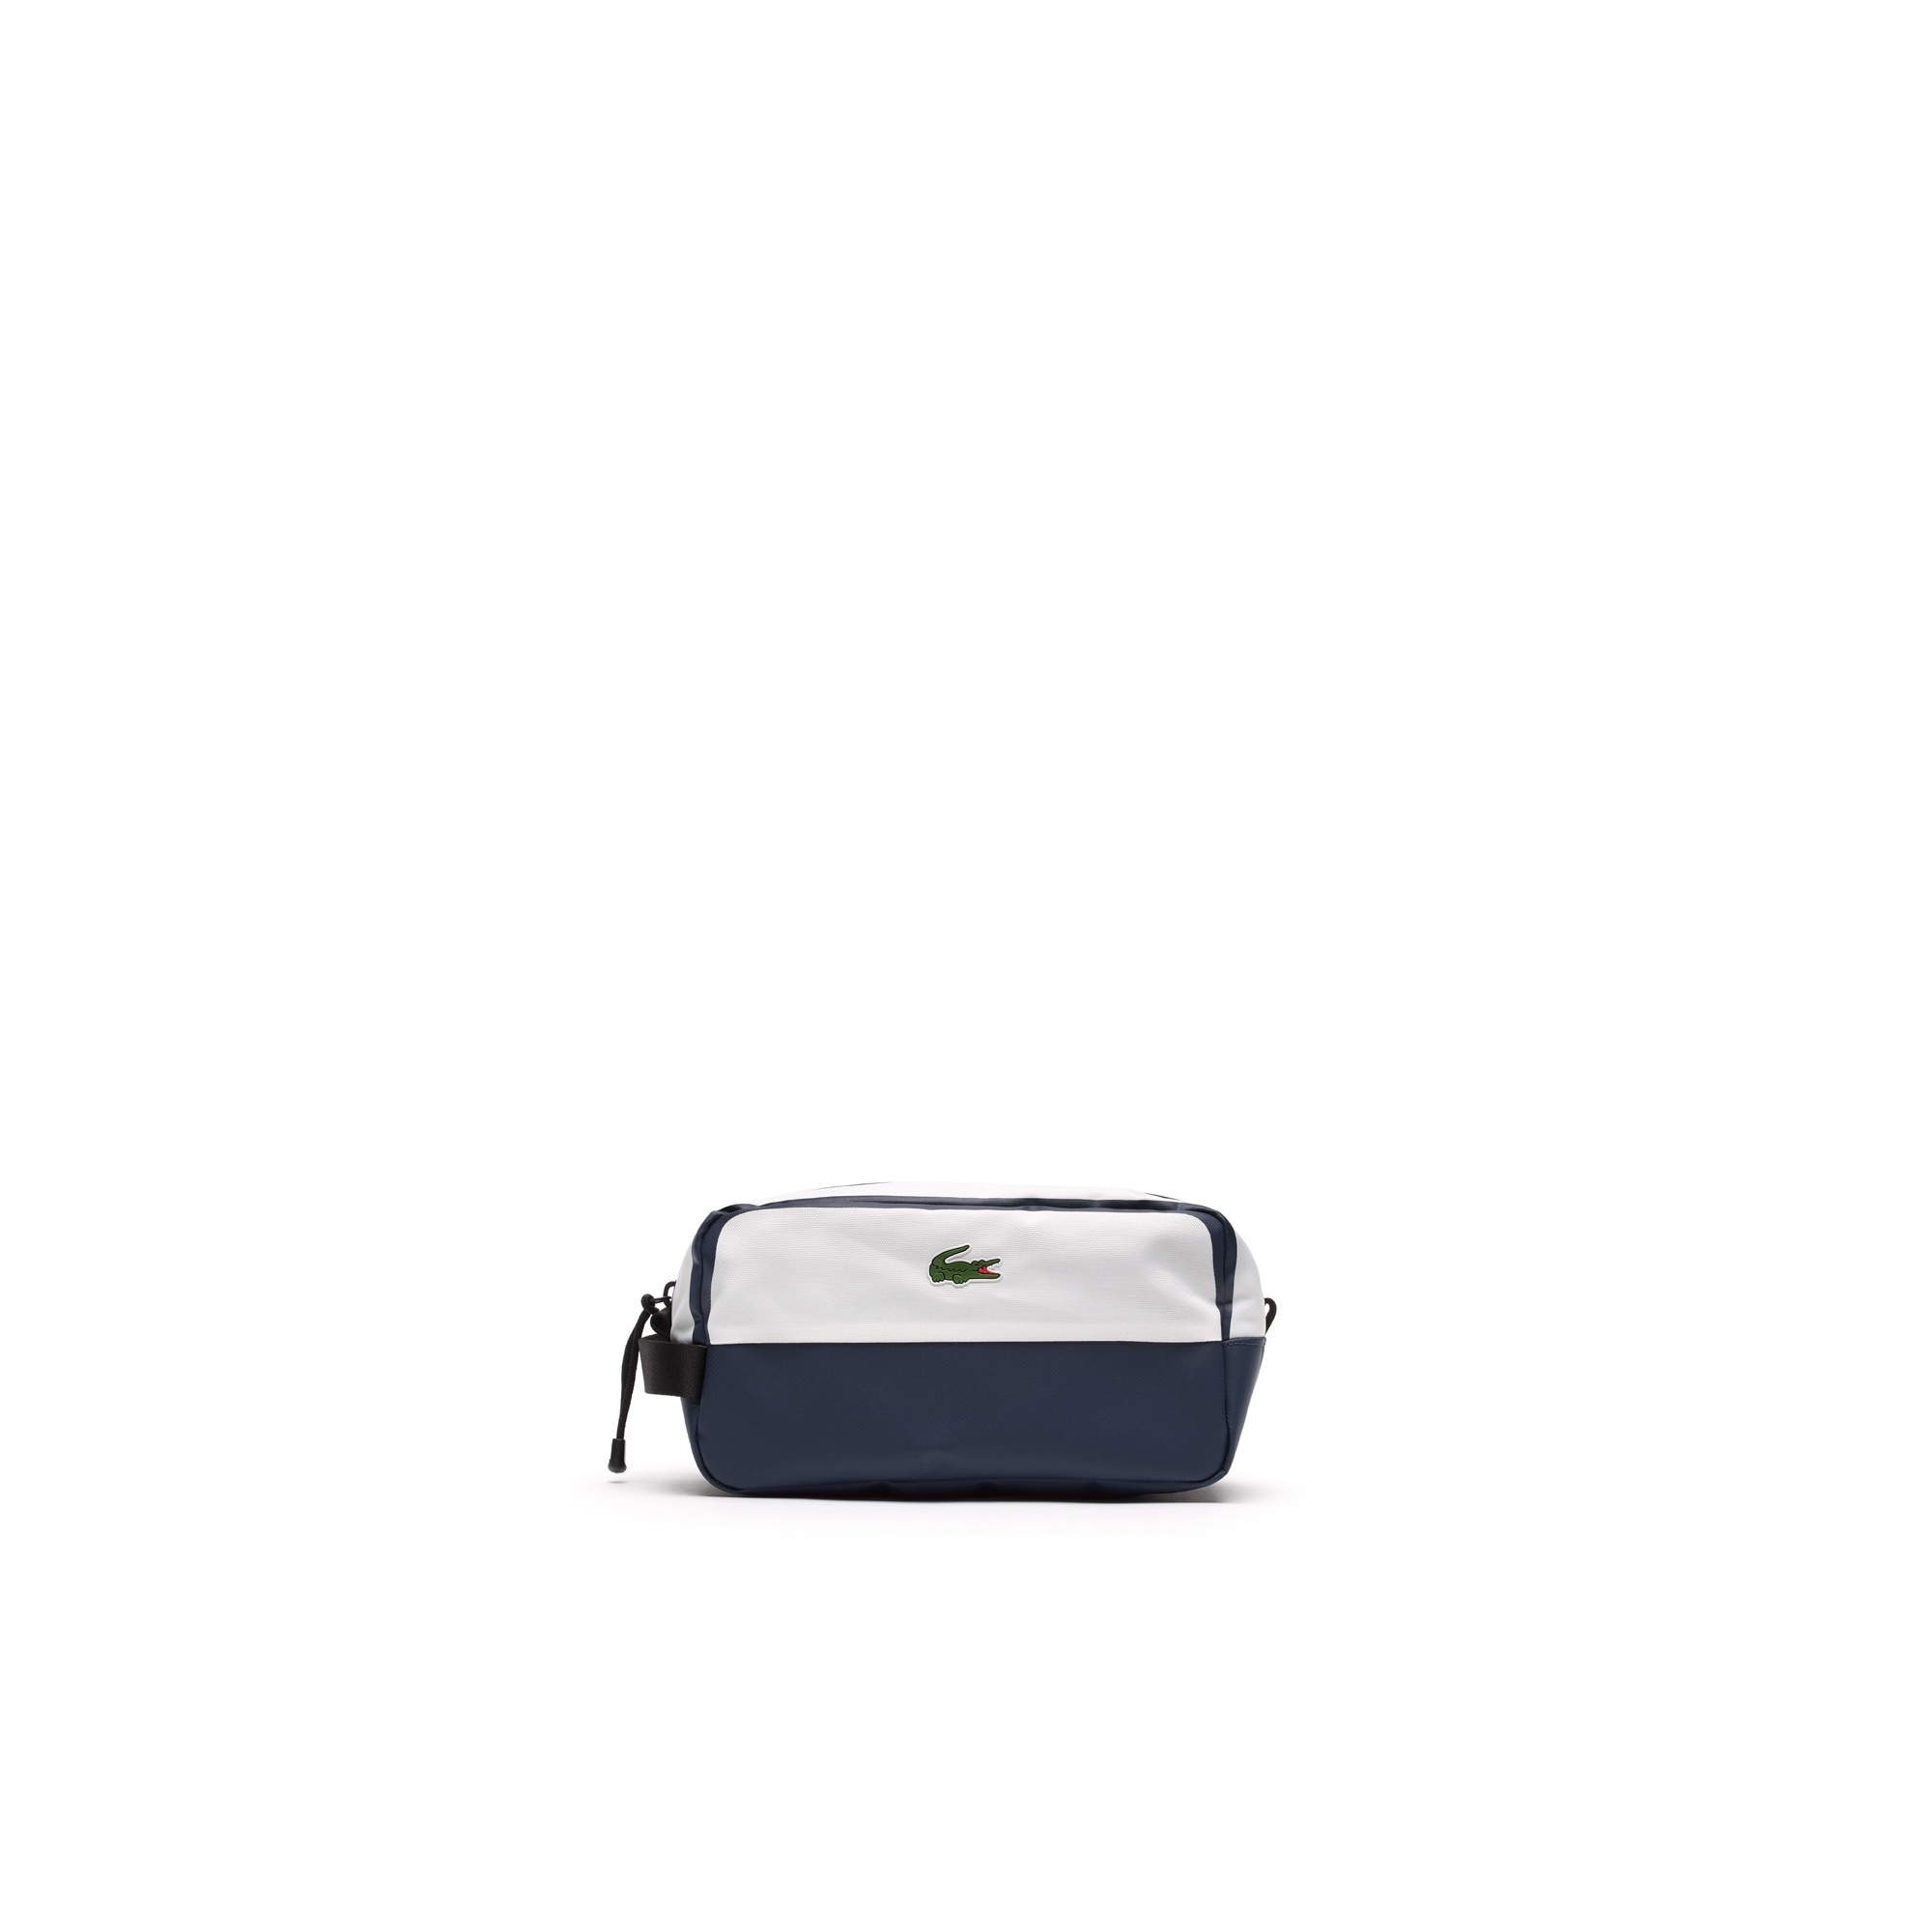 LT12 Lacoste Sport toiletry bag